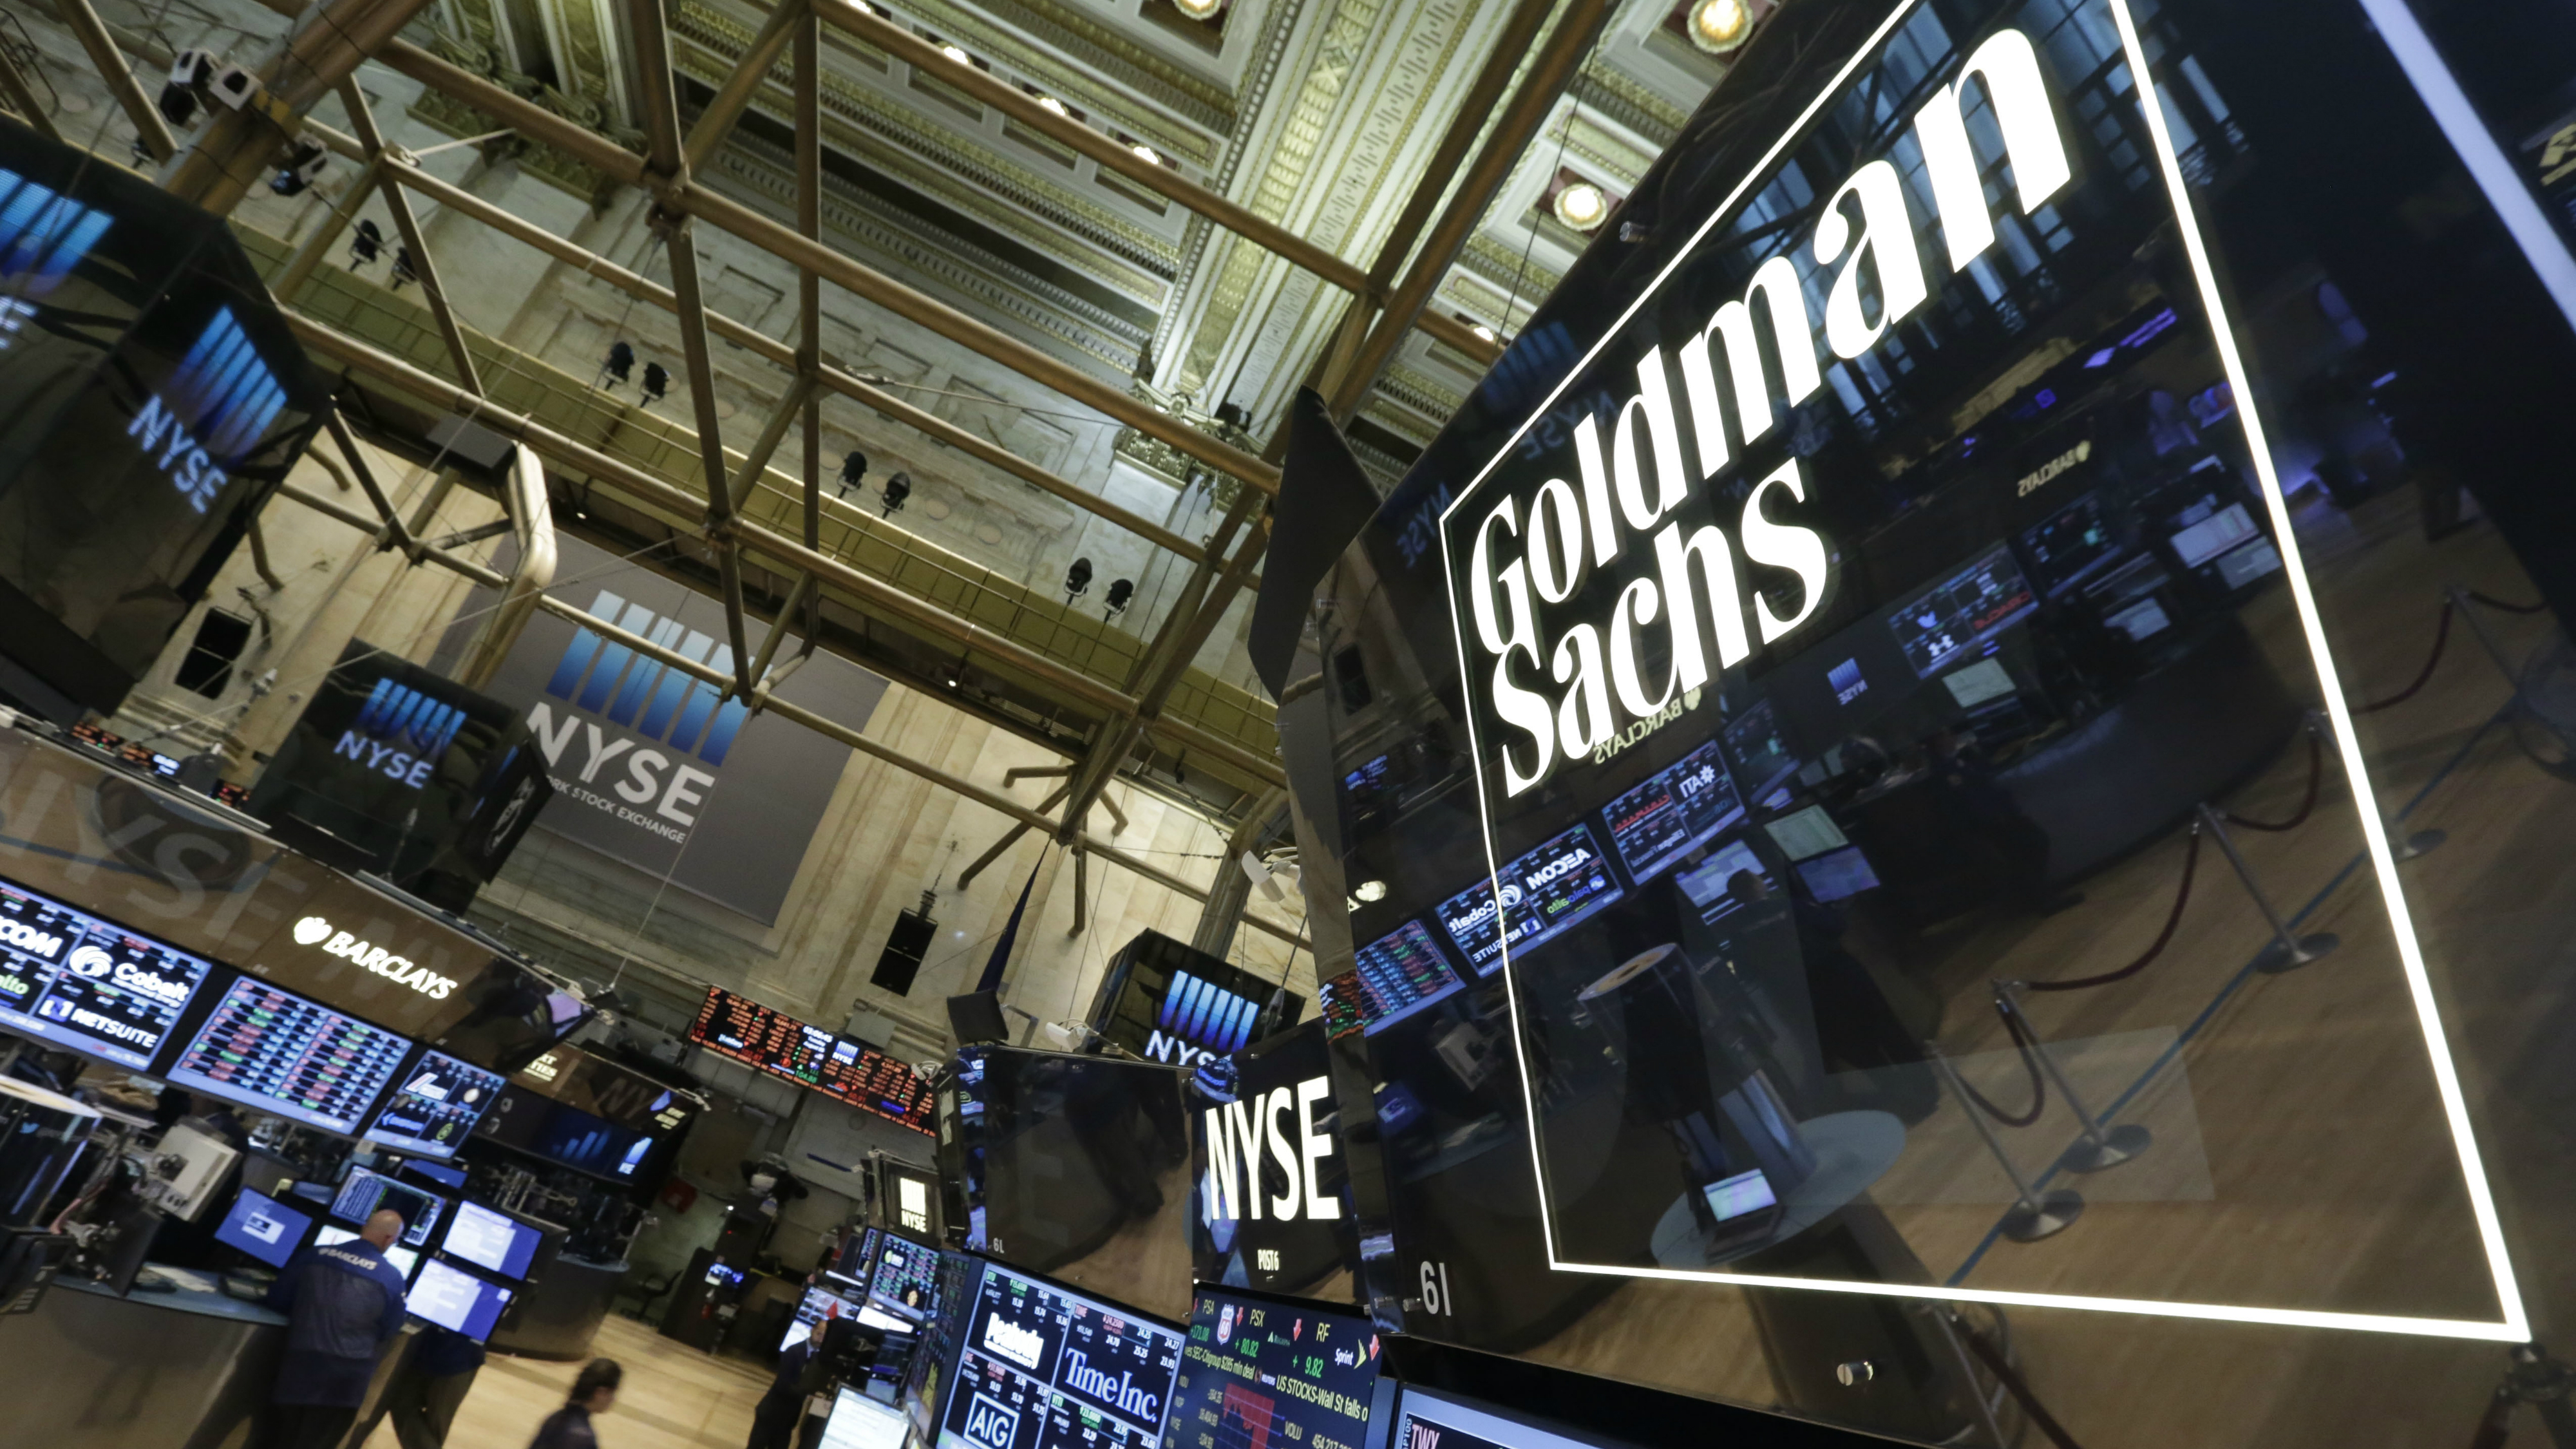 A lighted sign marks the Goldman Sachs trading post on the floor of the New York Stock Exchange, Tuesday, Aug. 5, 2014. The designated market maker operations of Goldman Sachs were sold to Dutch company IMC Financial Markets, which is scheduled to rebrand the post next week. (AP Photo/Richard Drew)